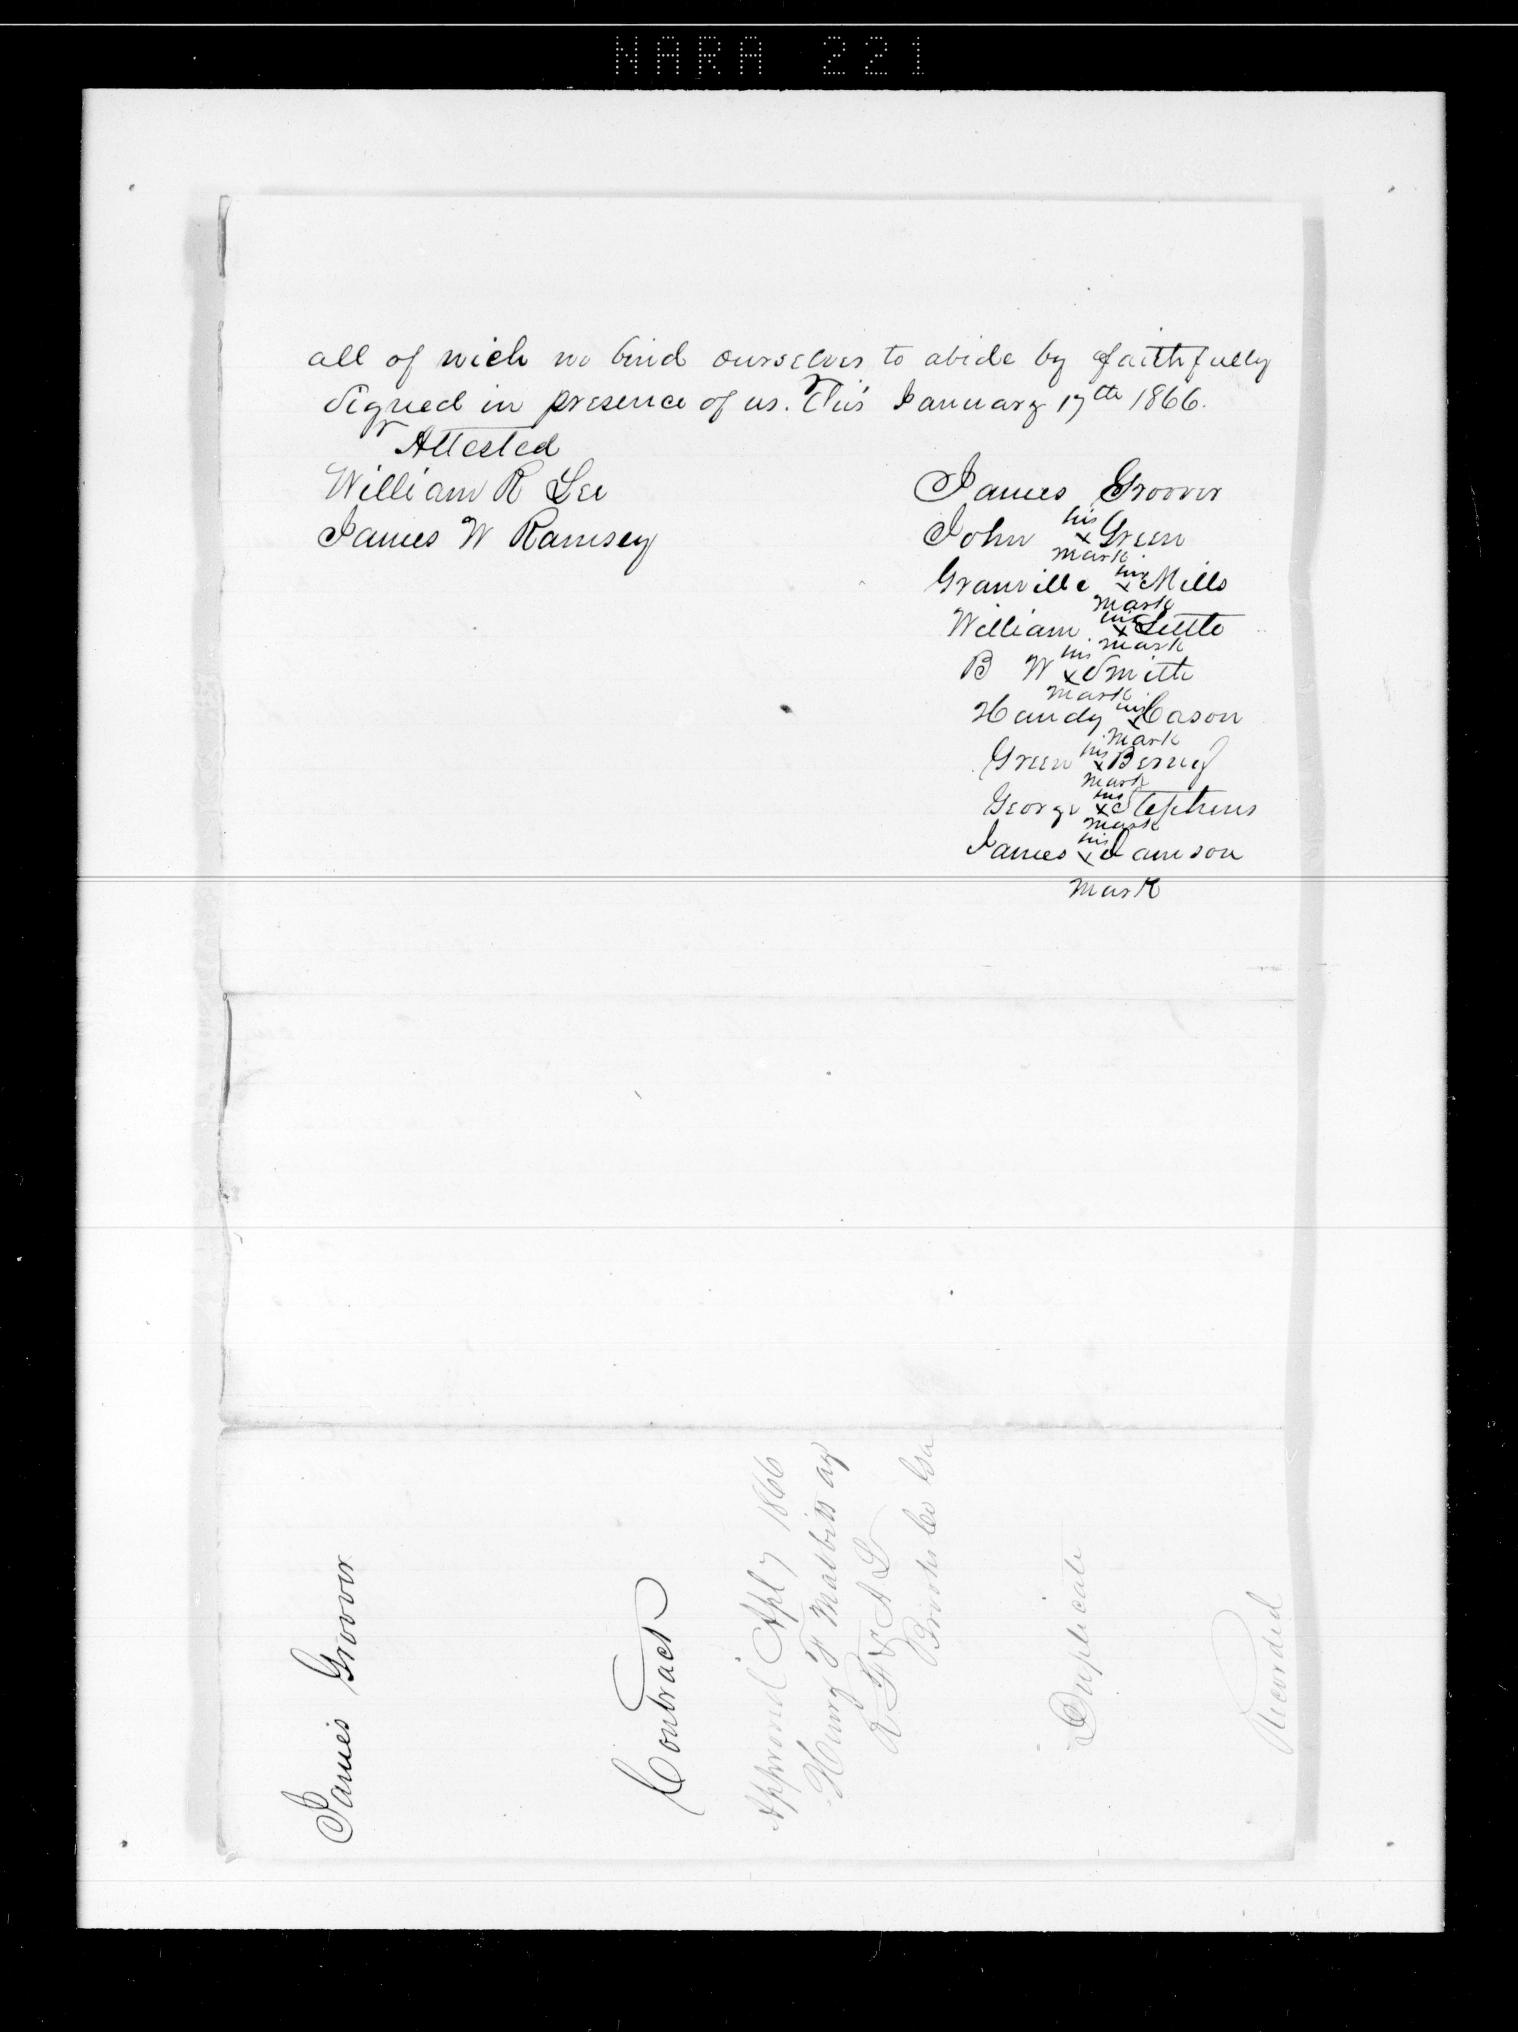 groover-james-with-freedmen-p3